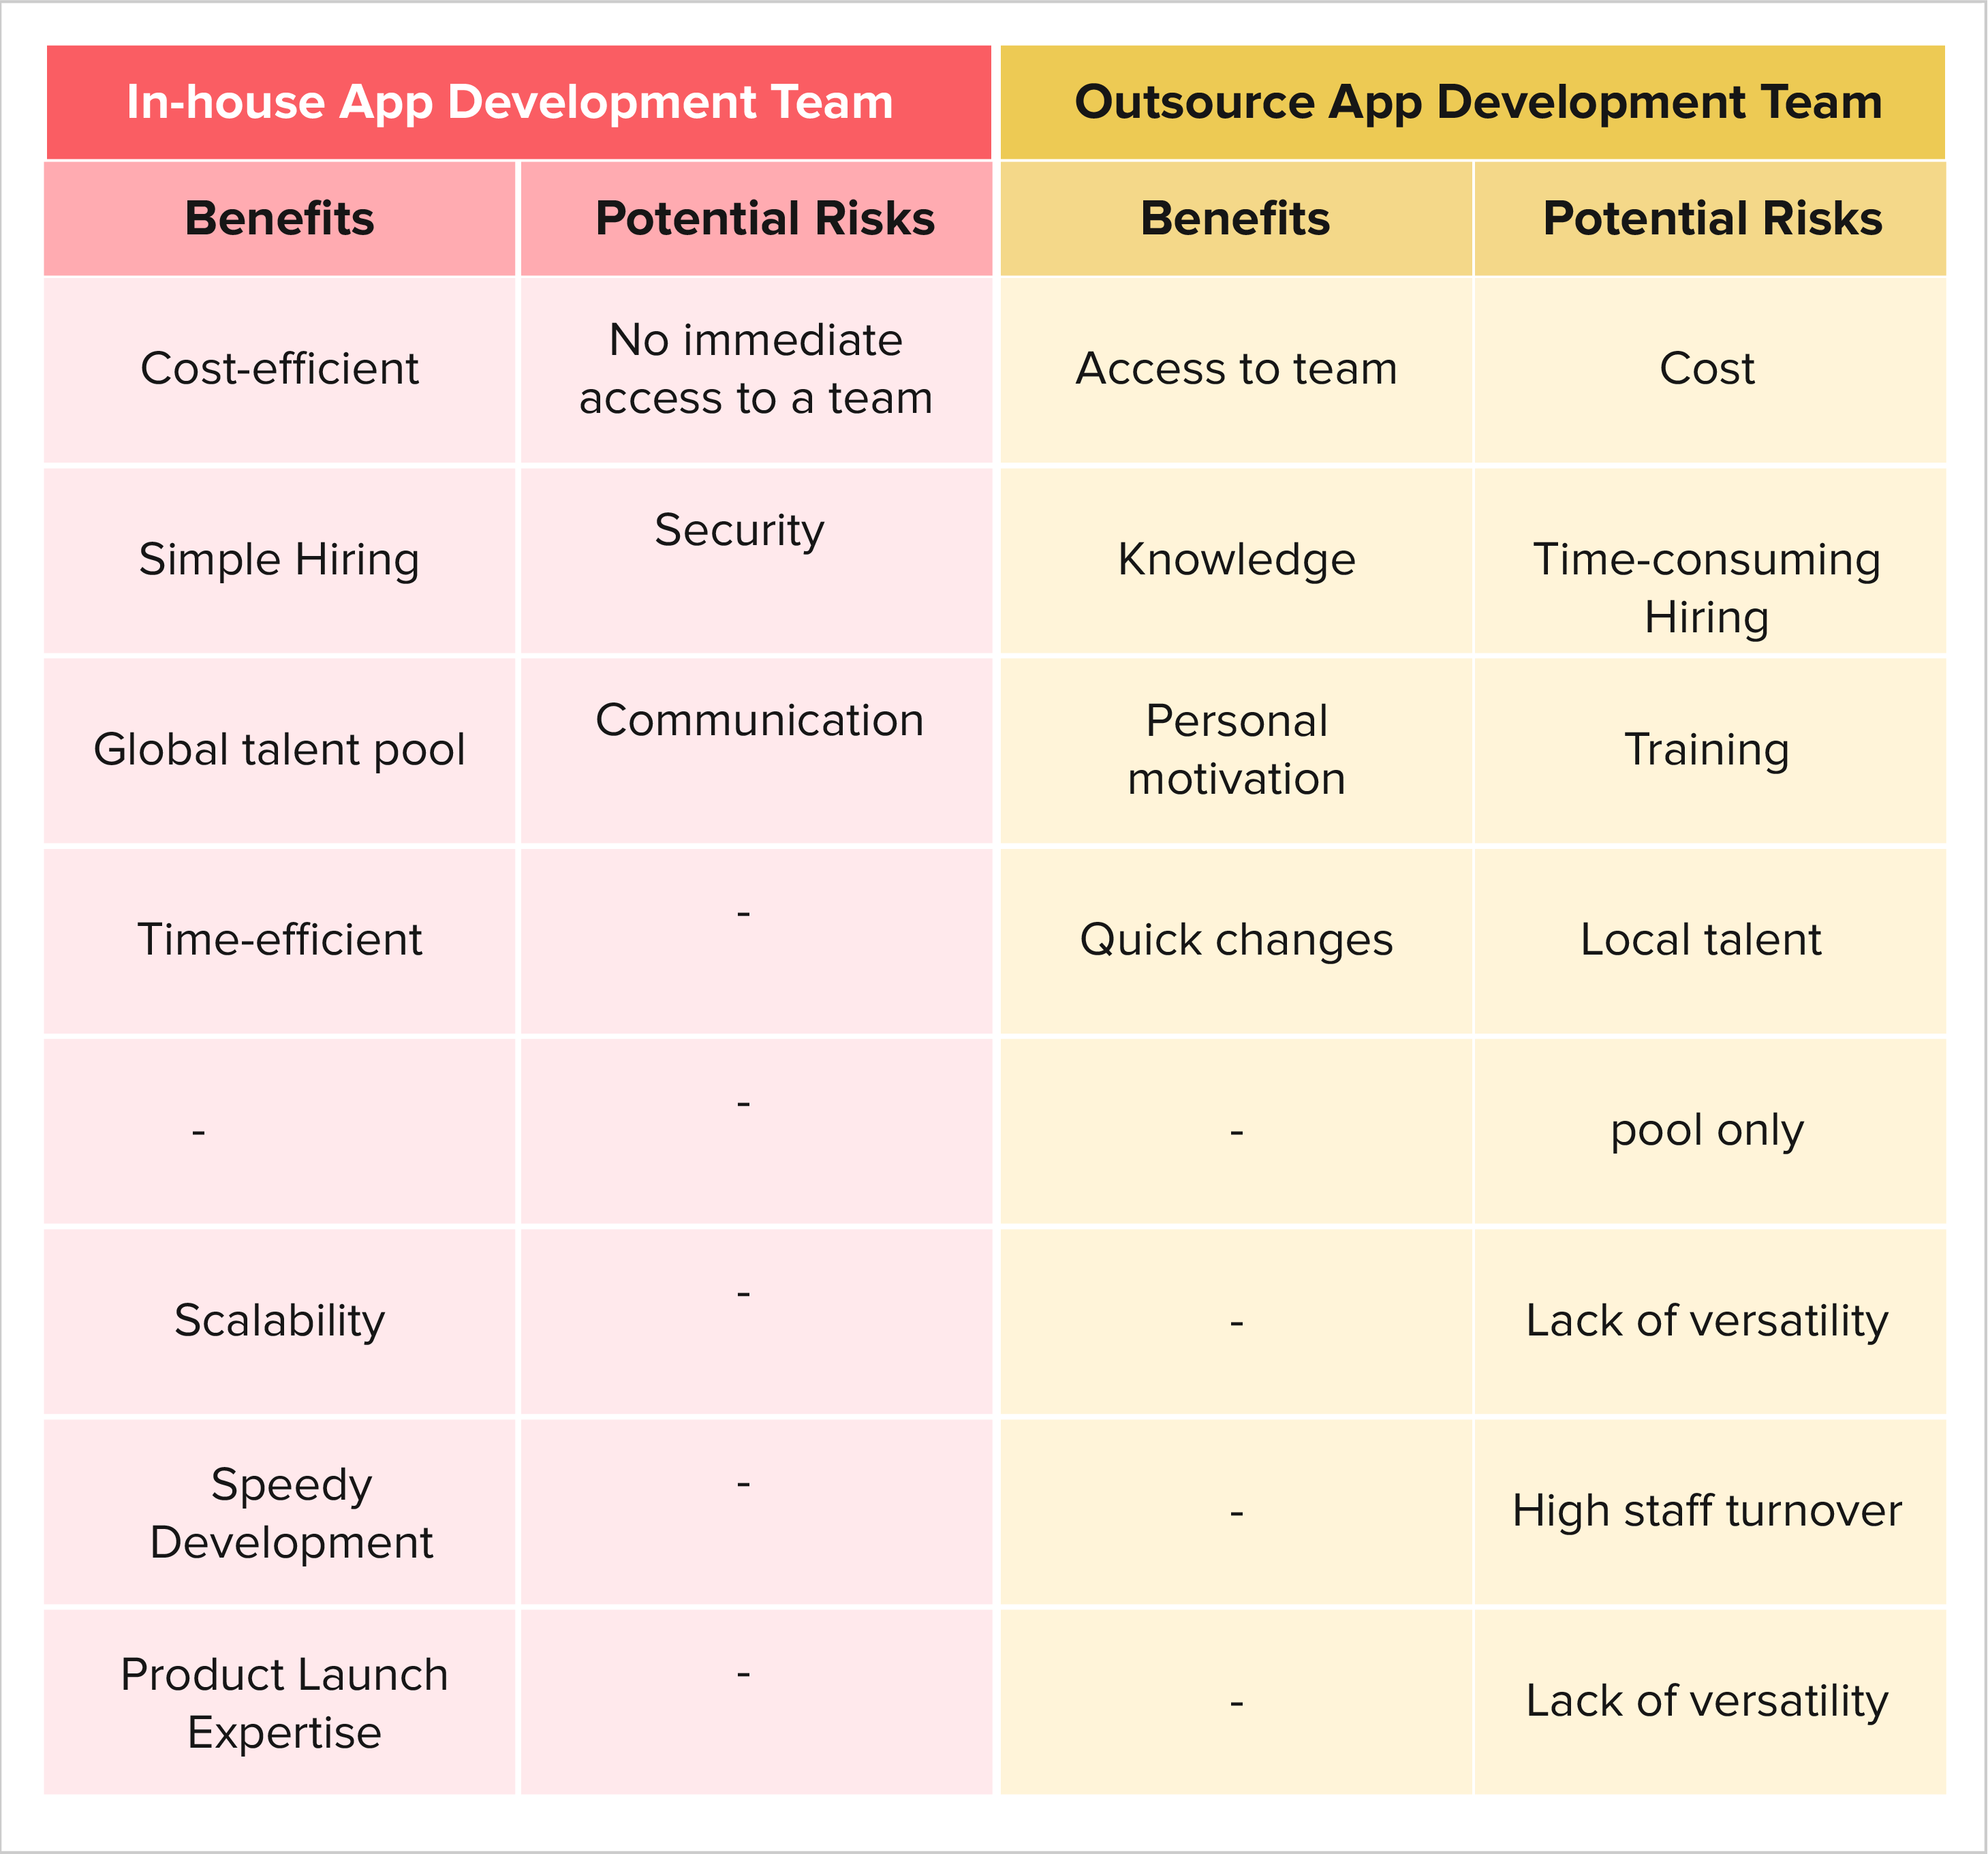 In-house App Development Team Vs. Outsourcing App Development Team